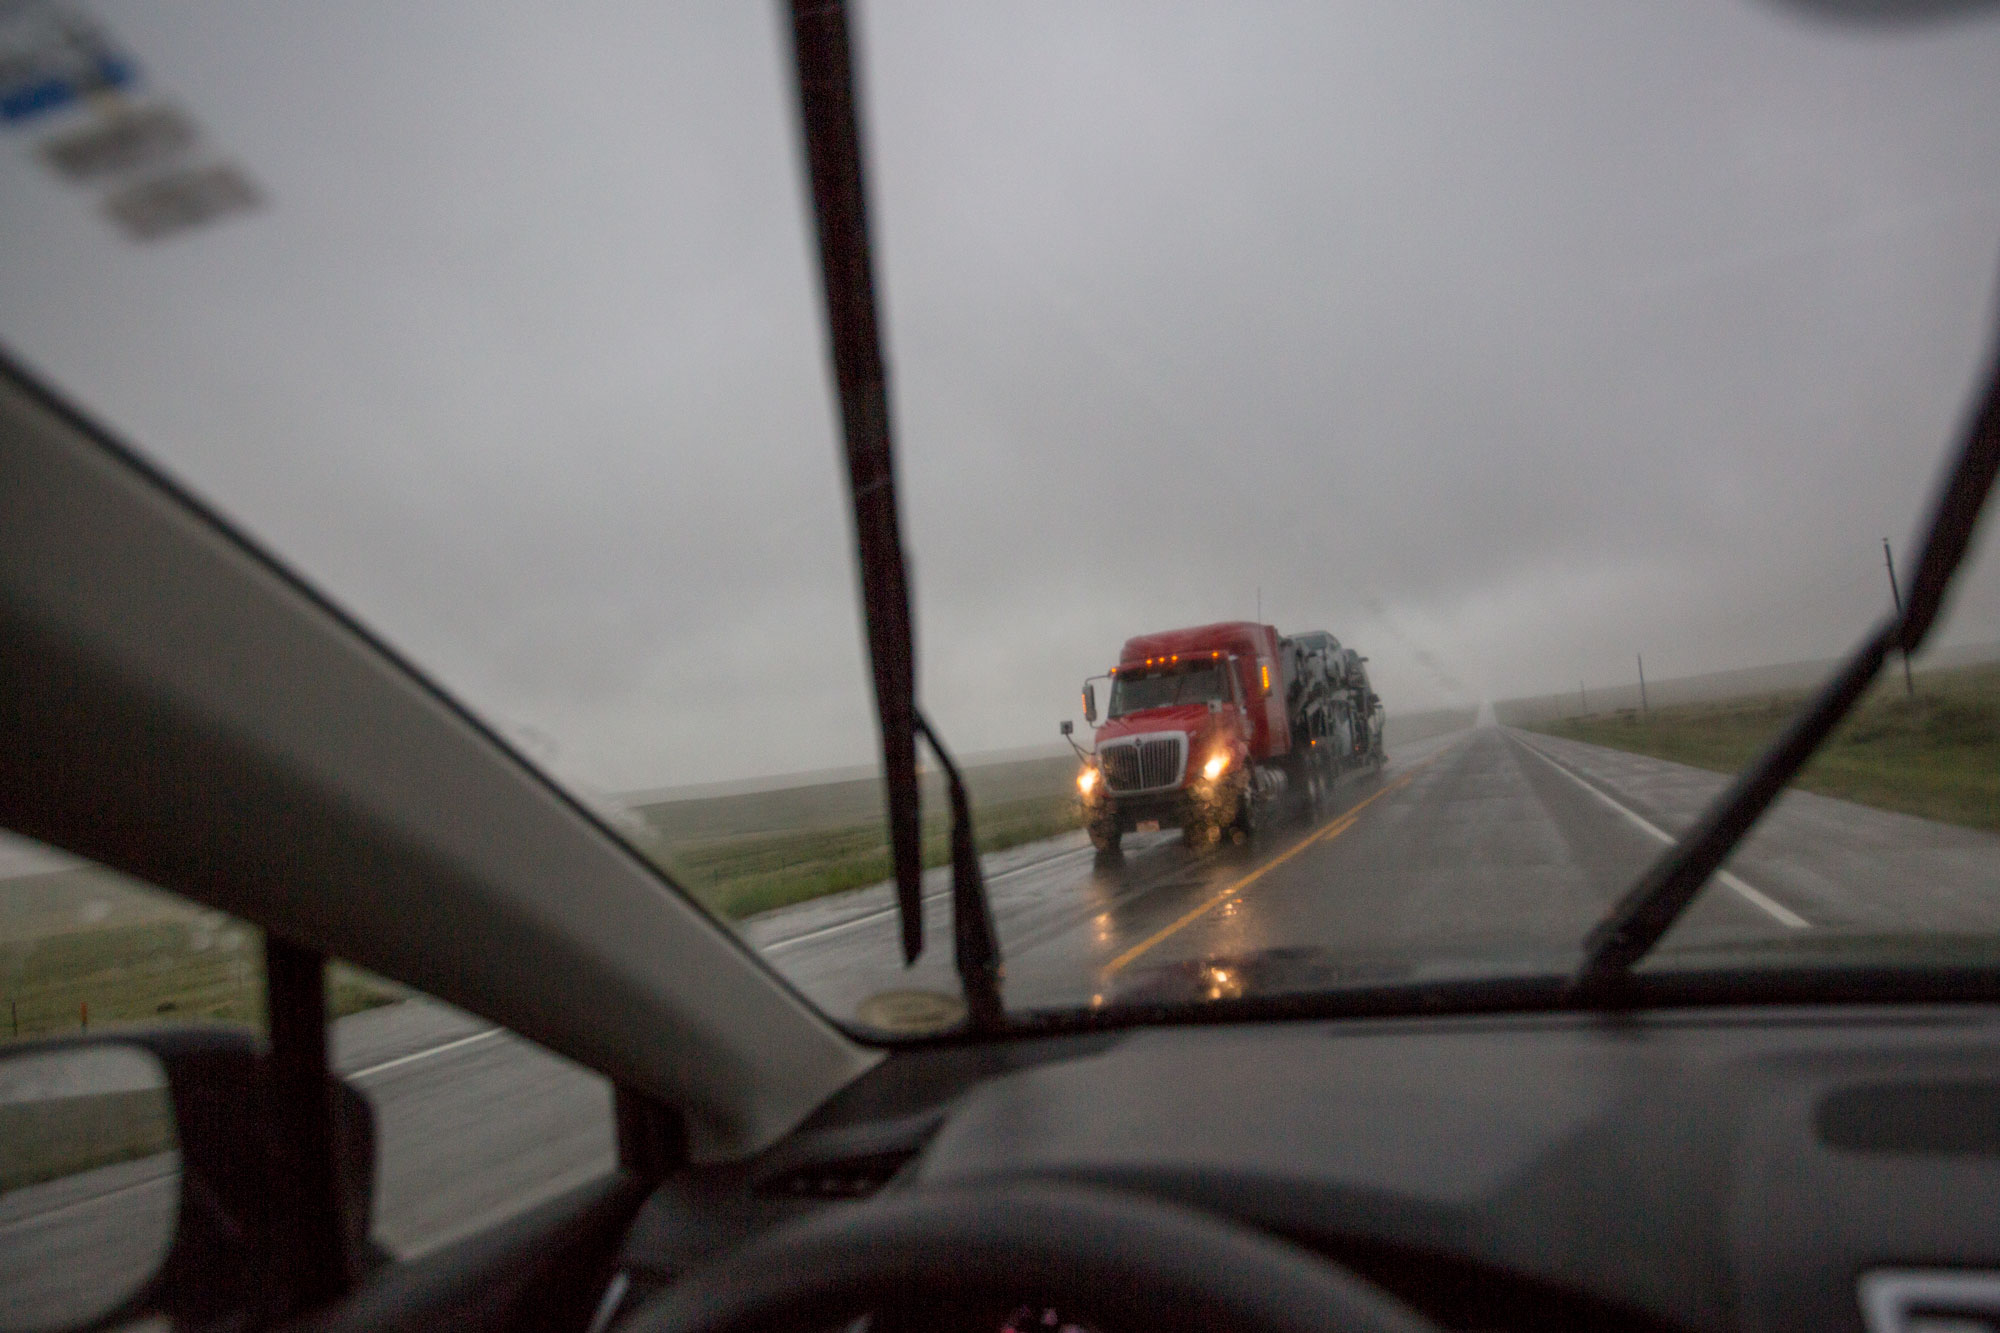 <p>A truck headed north on Hwy 287 near the Eastern Plains town of Lamar on May 20, 2019. </p>